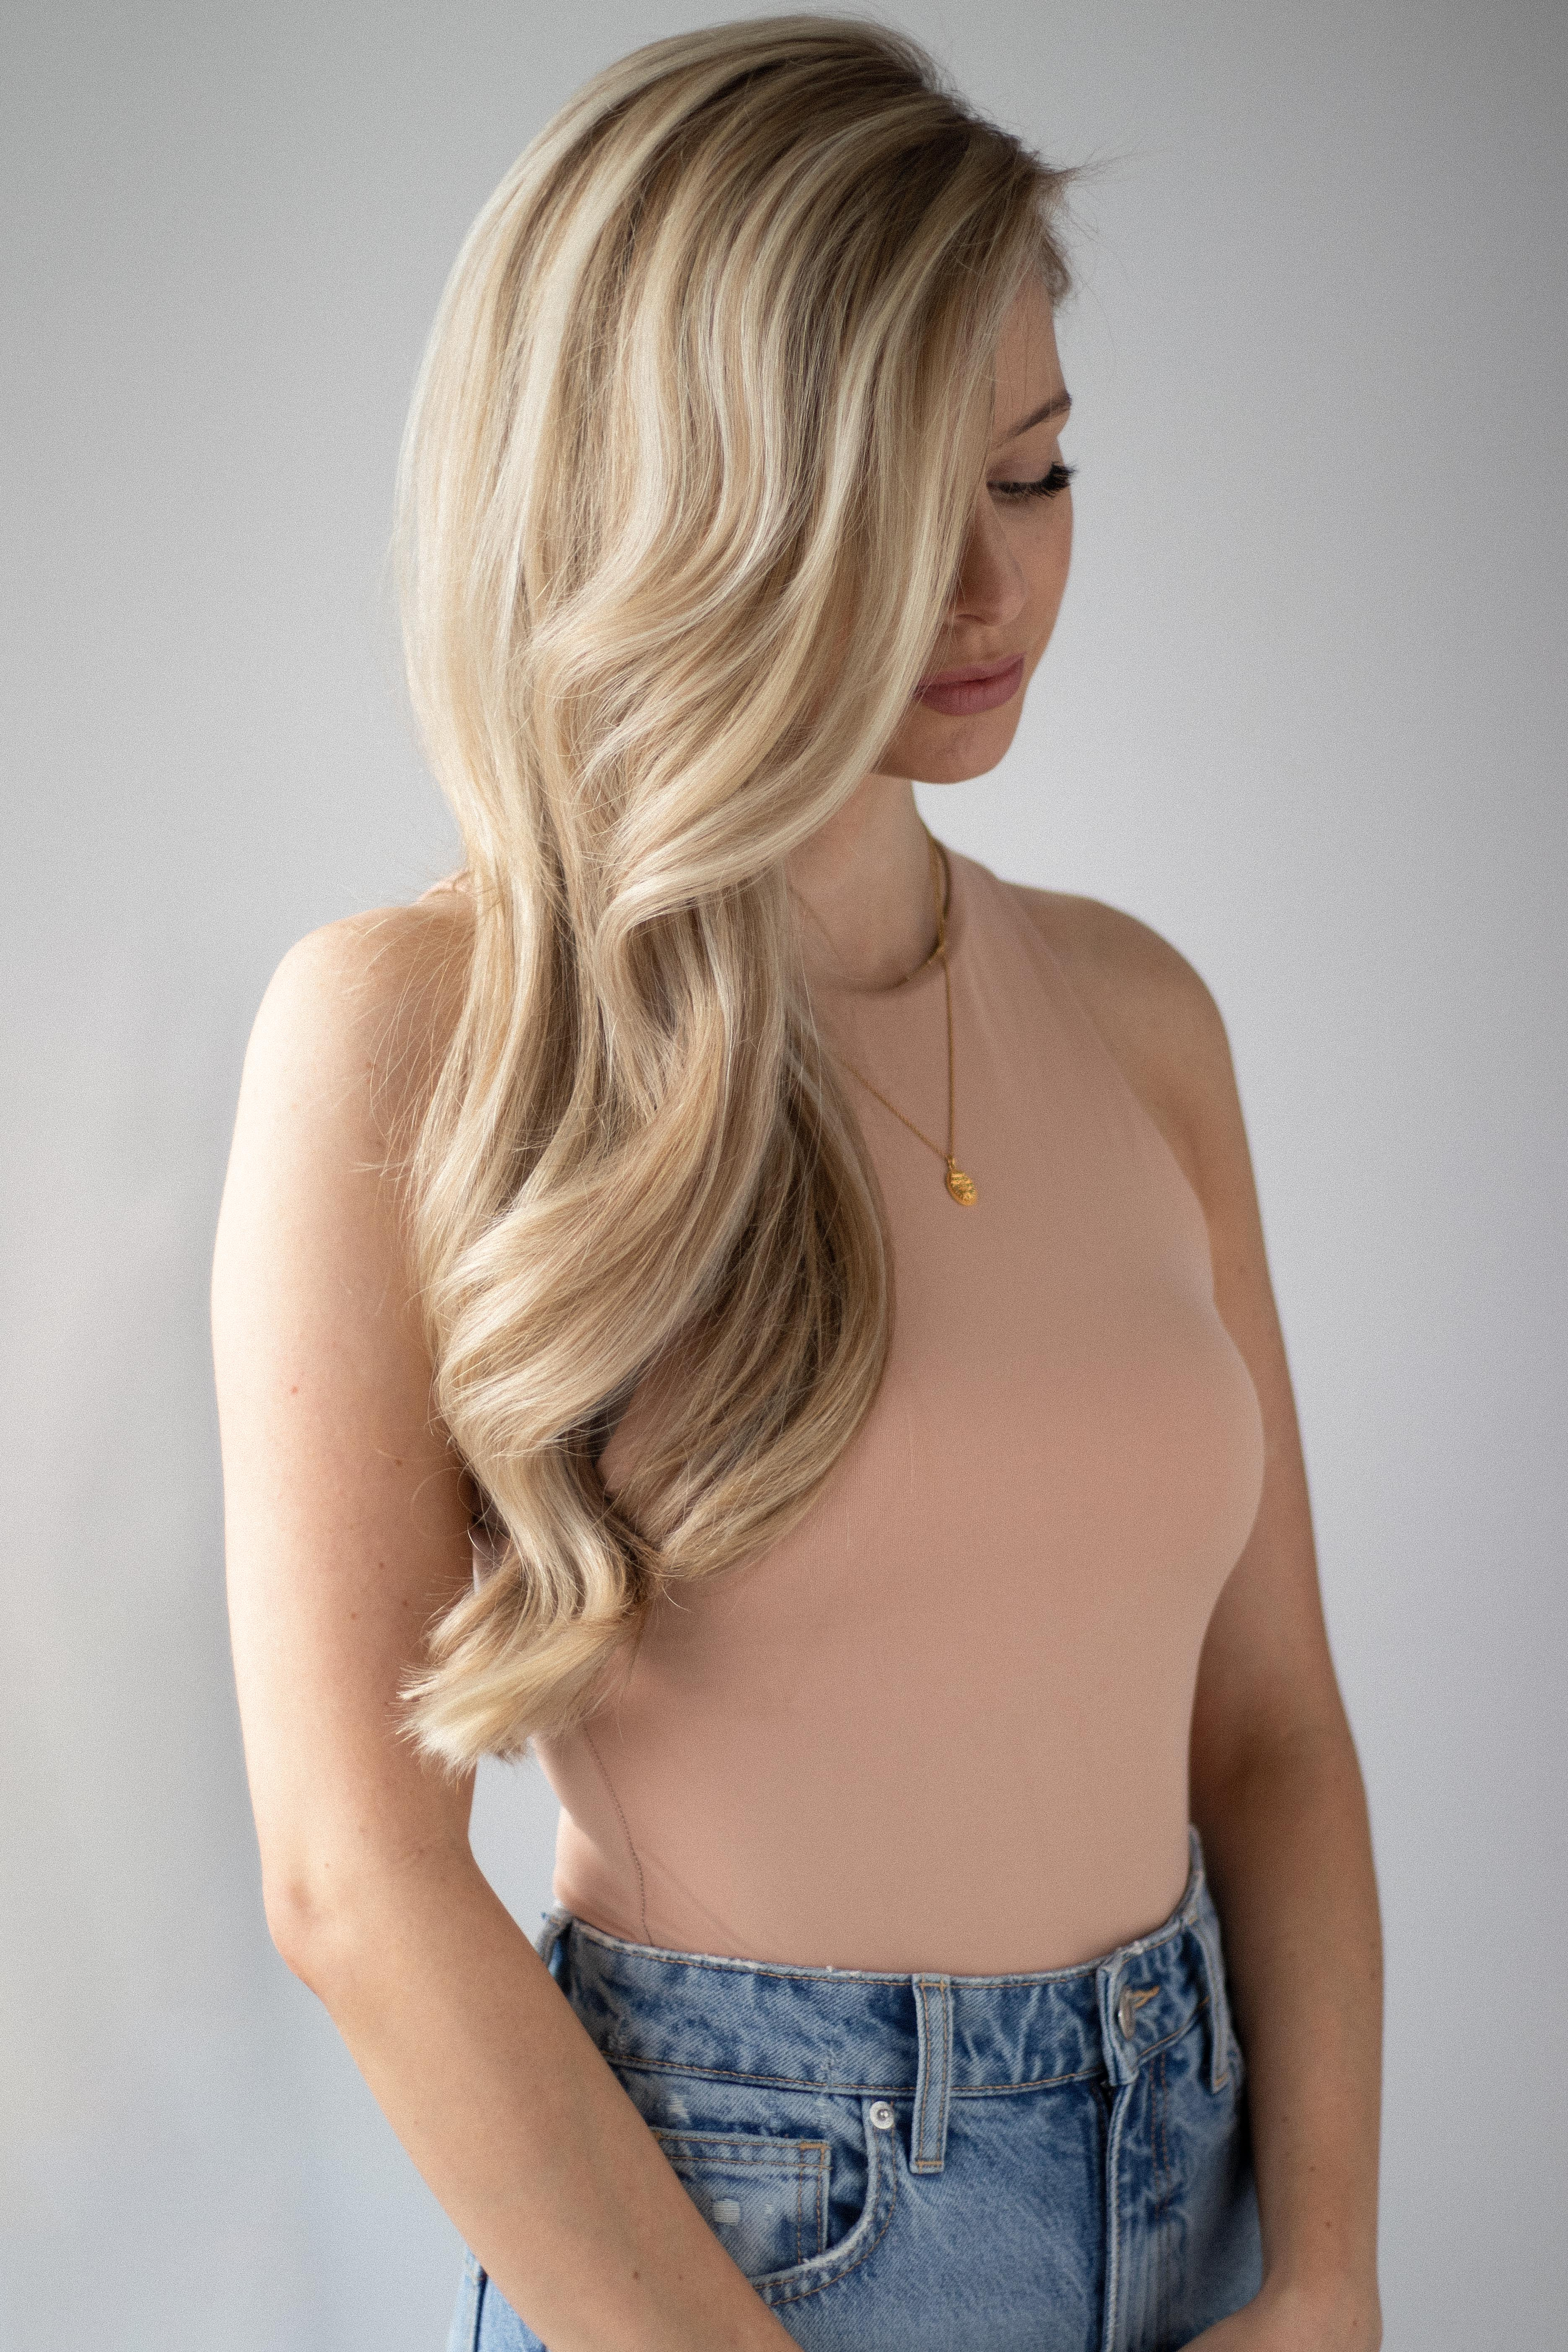 HOW TO GROW LONG AND HEALTHY HAIR | www.alexgaboury.com